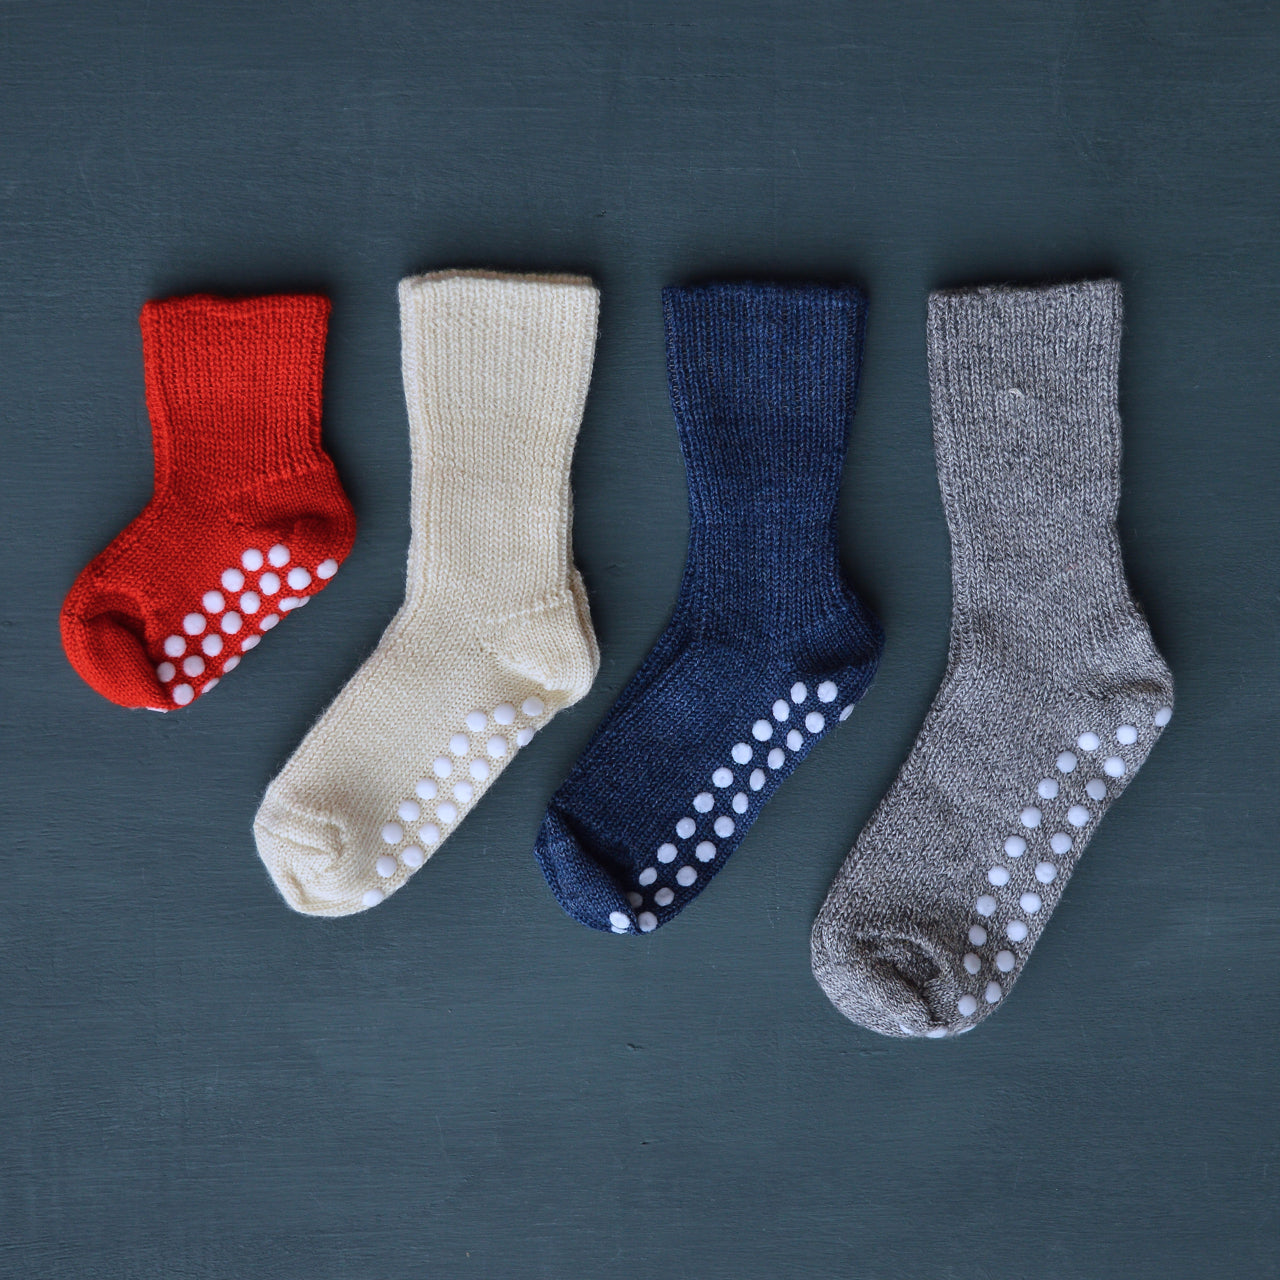 Introducing 100% Organic Wool Socks and Tights by Hirsch Natur